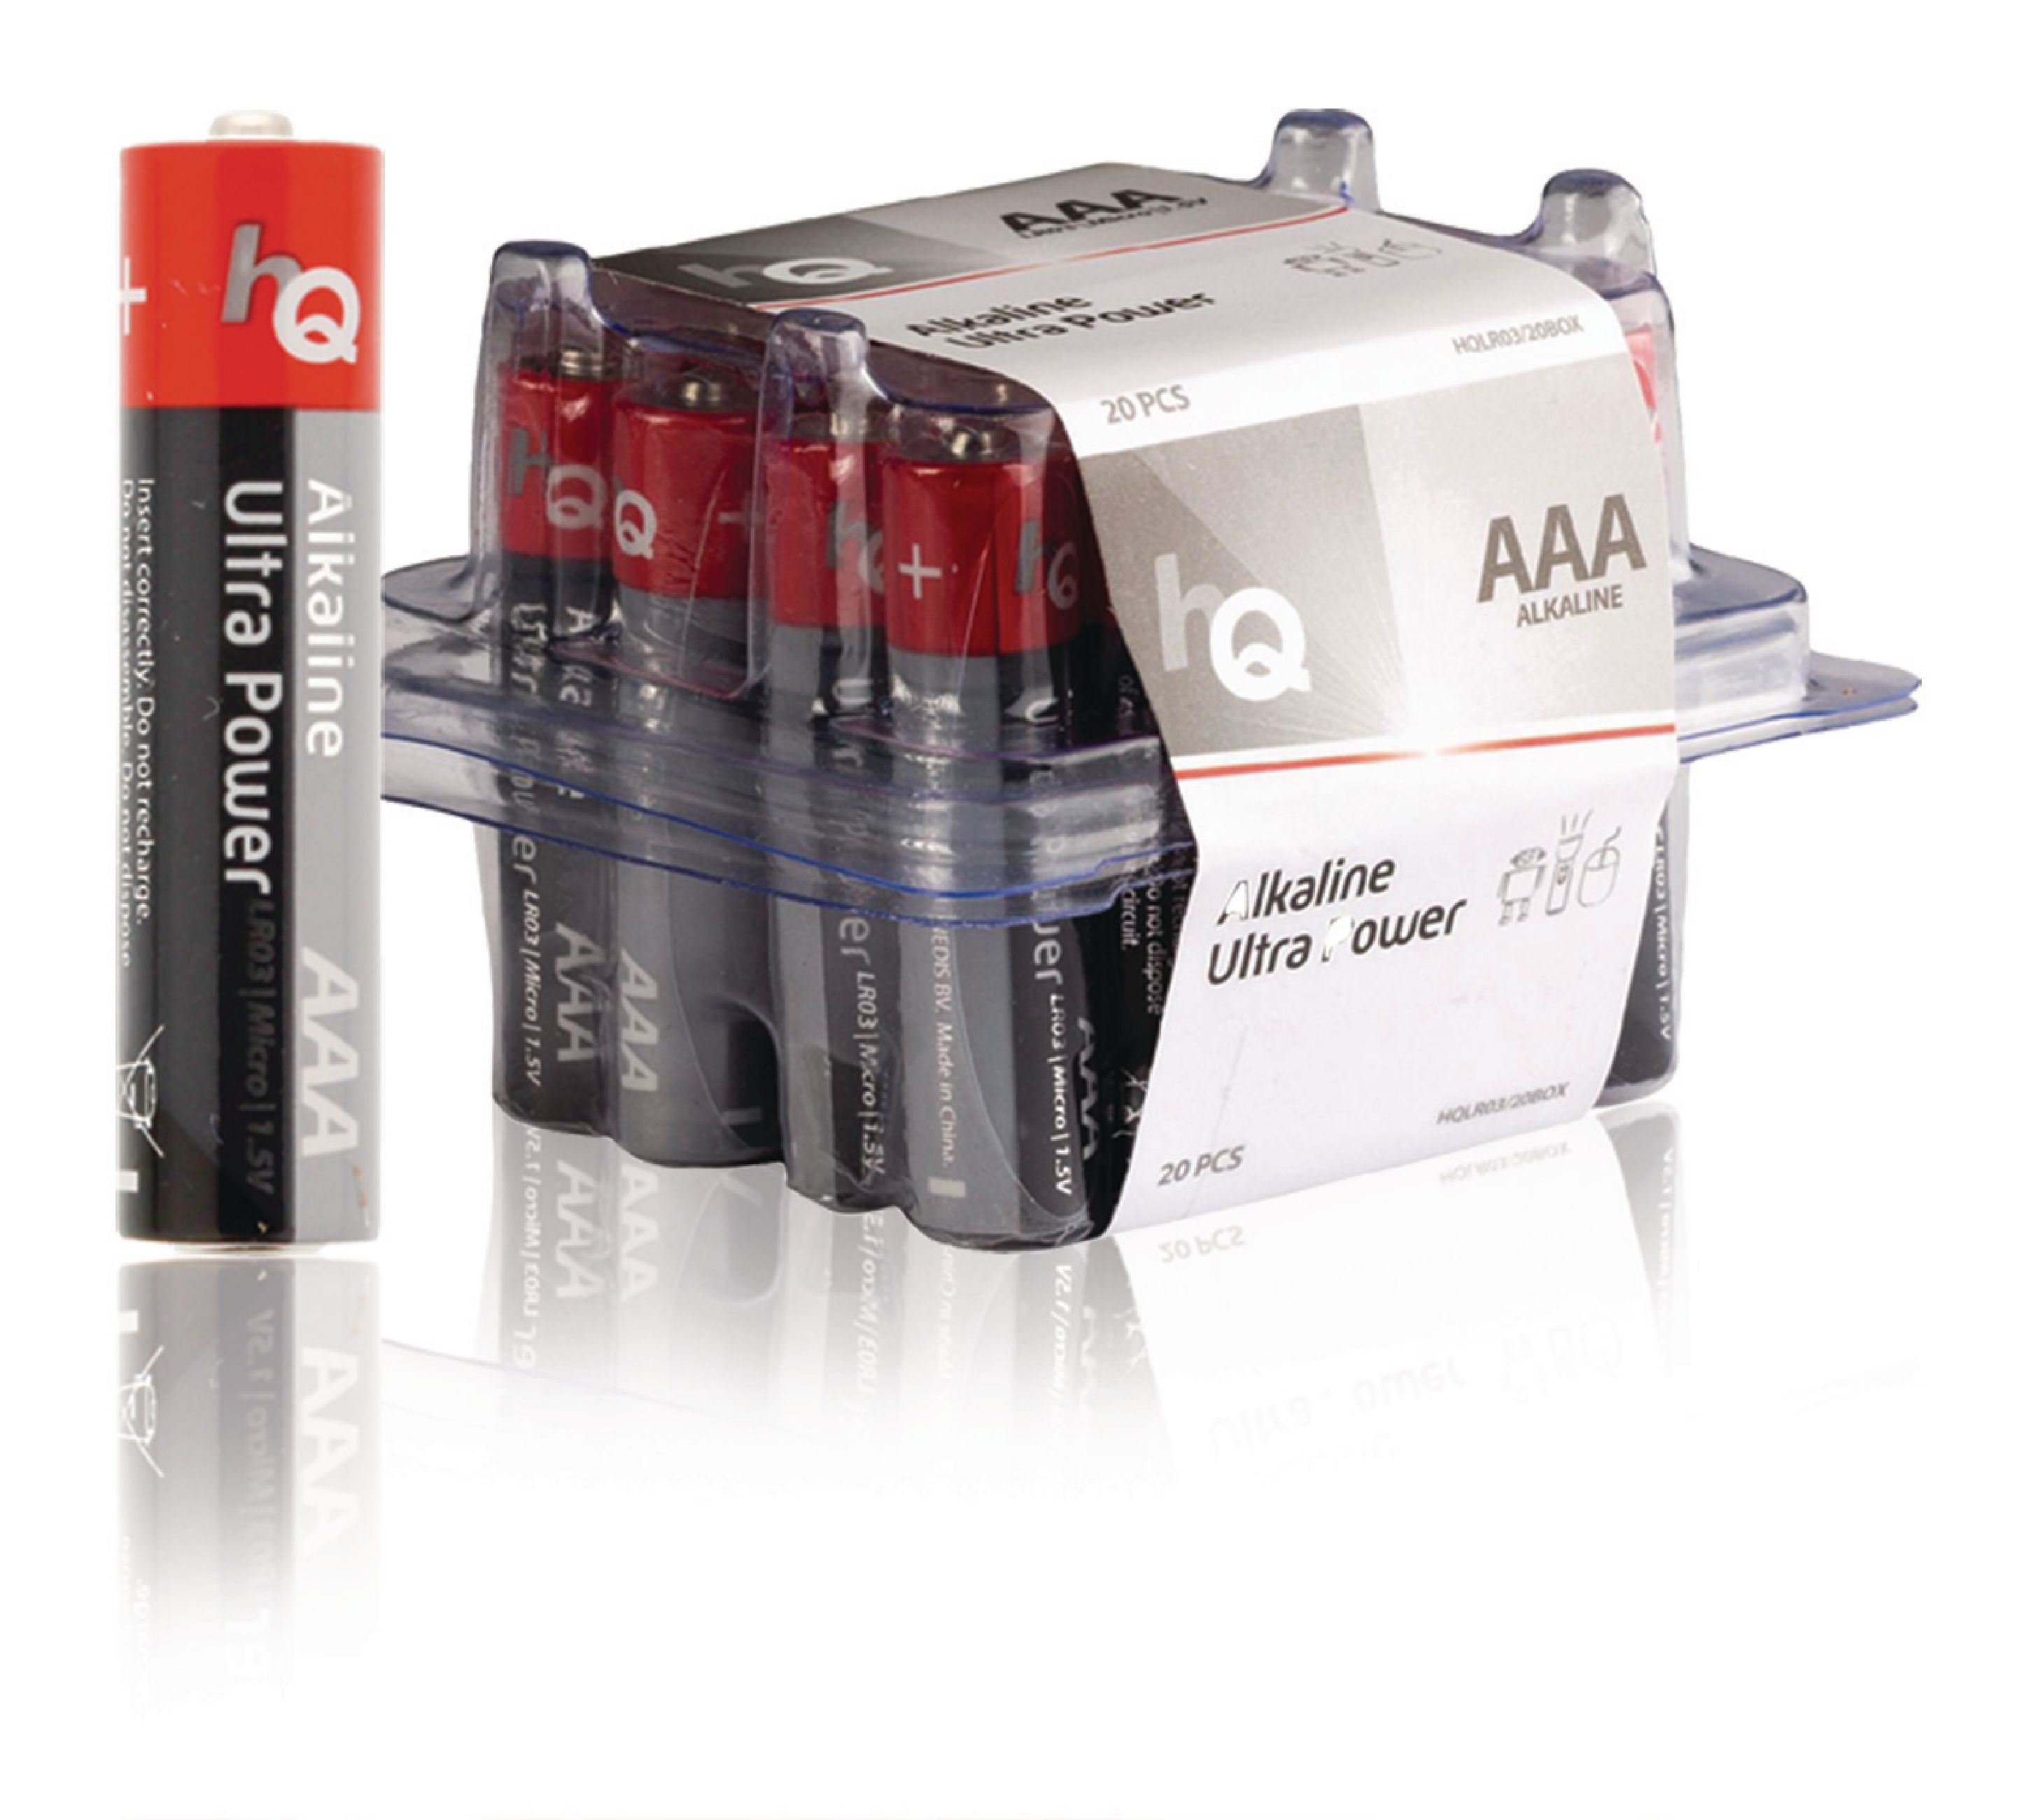 Alkalická baterie HQ Ultra Power AAA 1.5 V, 20ks, HQLR03/20BOX